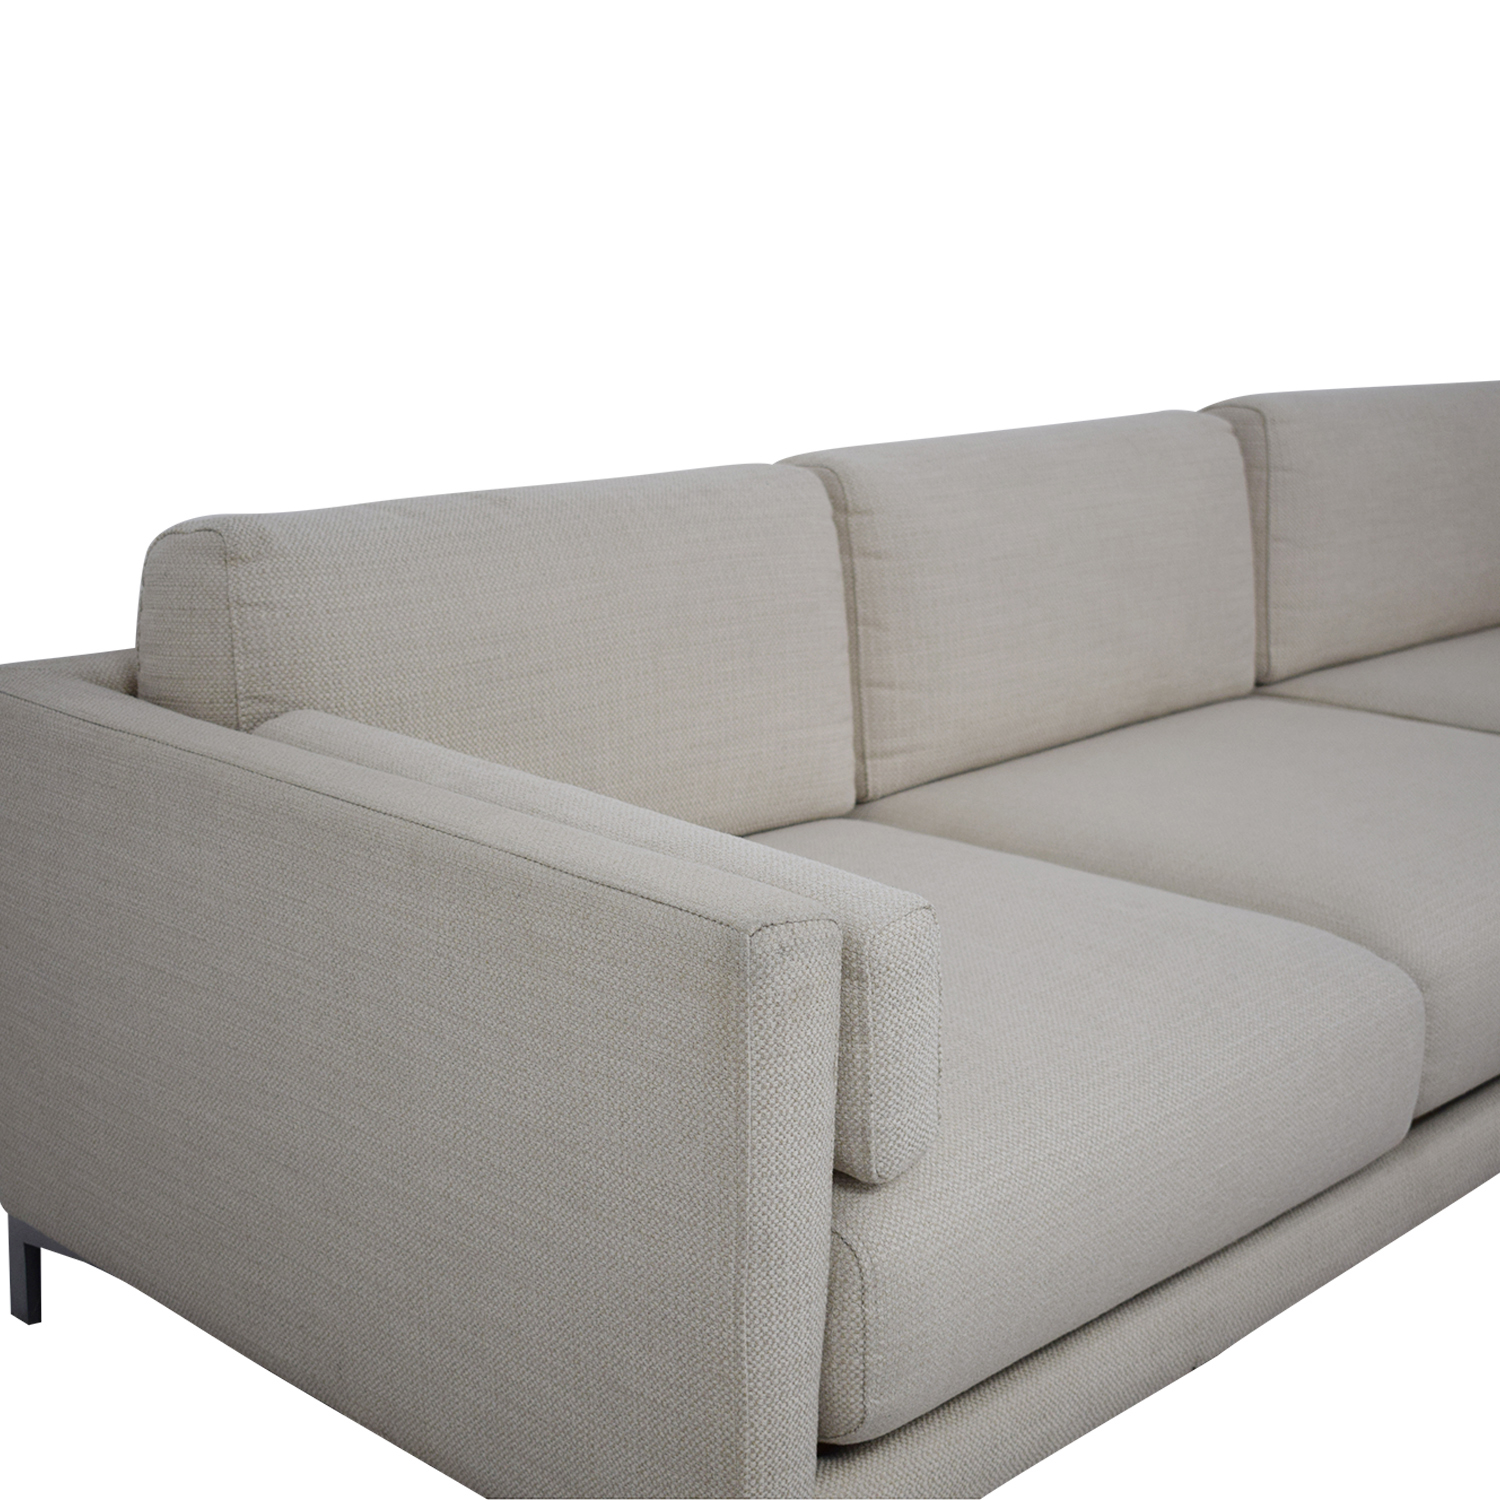 CB2 District Sectional Sofa with Chaise CB2